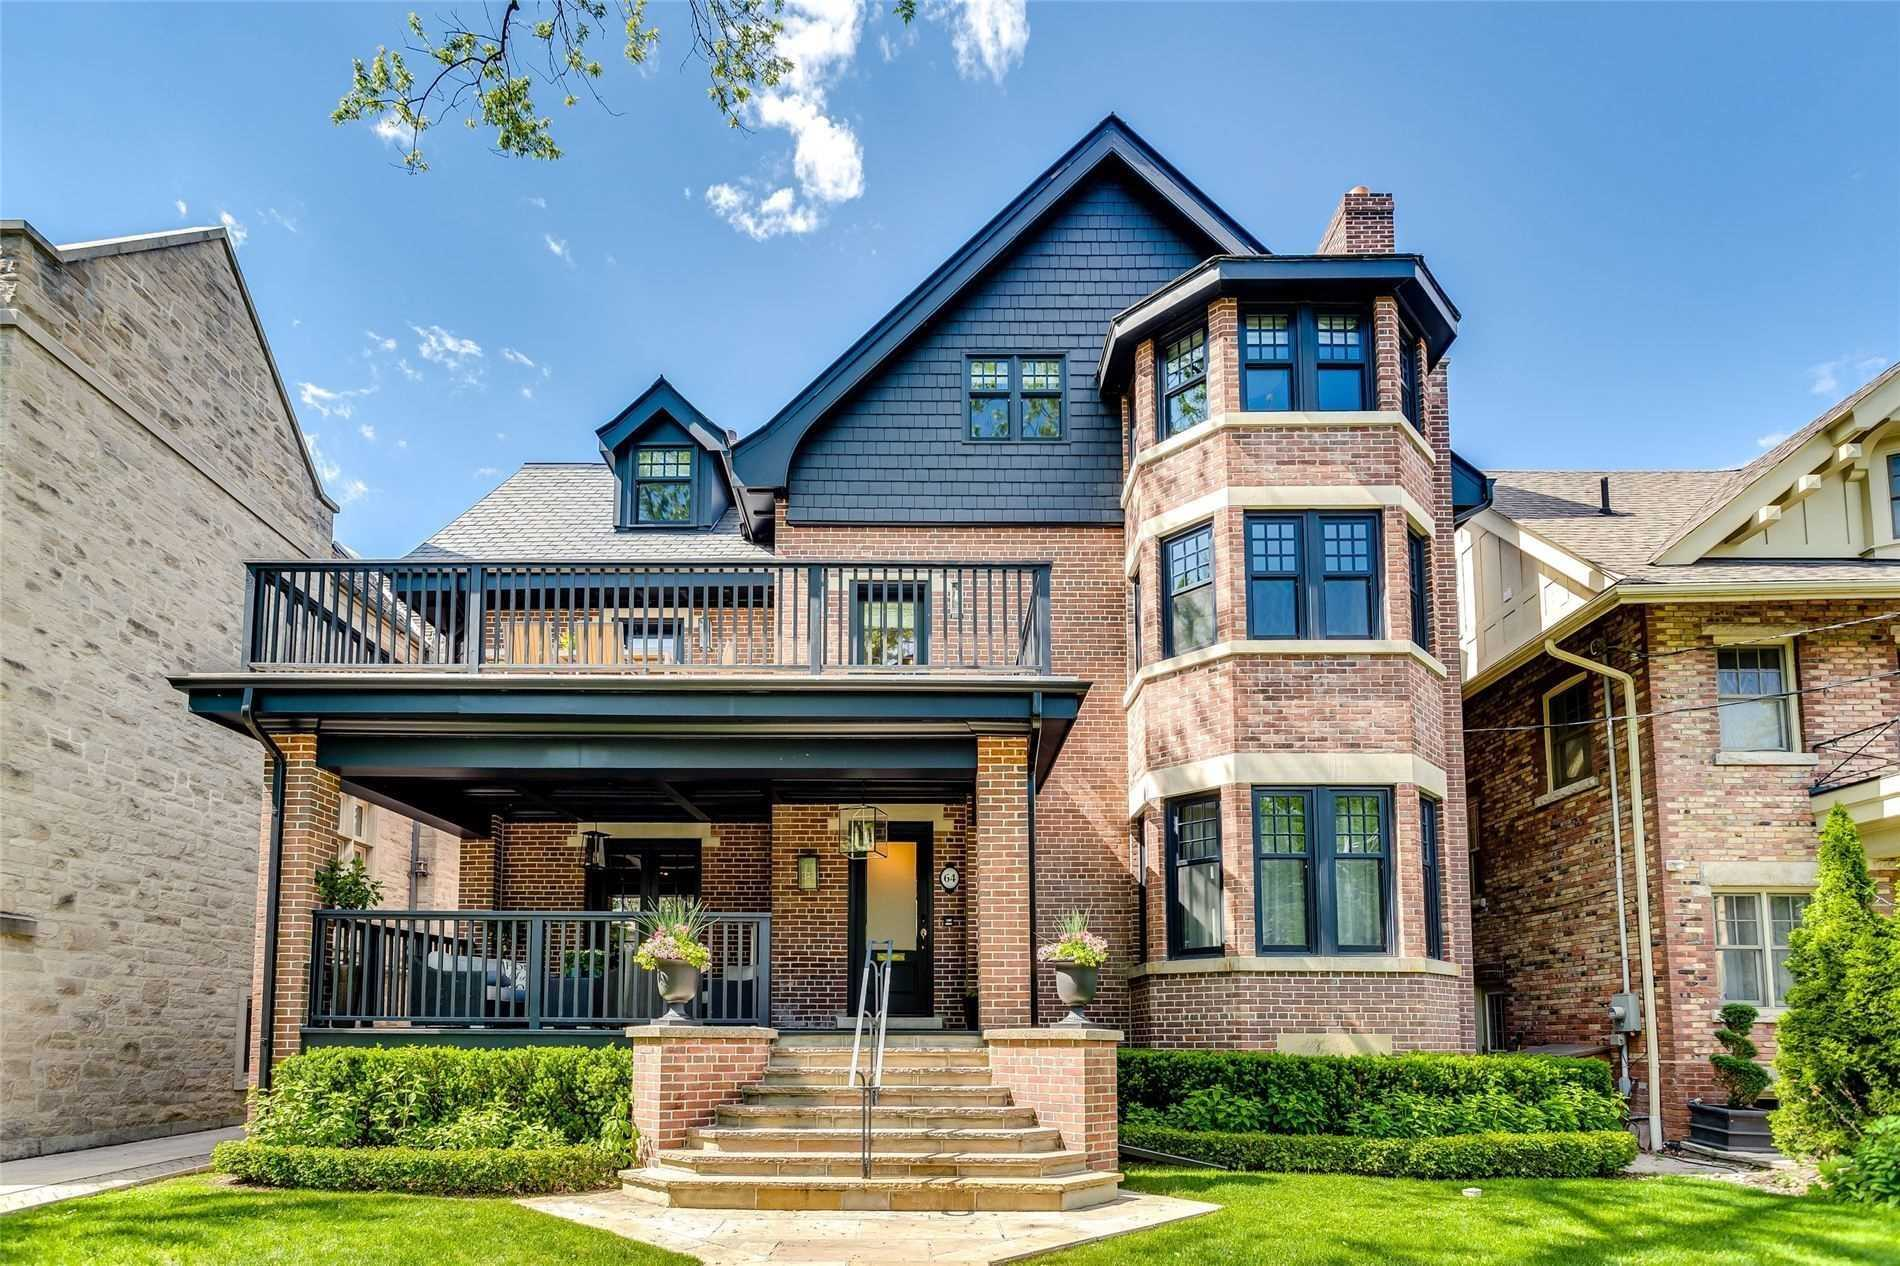 64 Highland Ave, Toronto, Ontario M4W2A3, 6 Bedrooms Bedrooms, 12 Rooms Rooms,8 BathroomsBathrooms,Detached,For Sale,Highland,C5081118